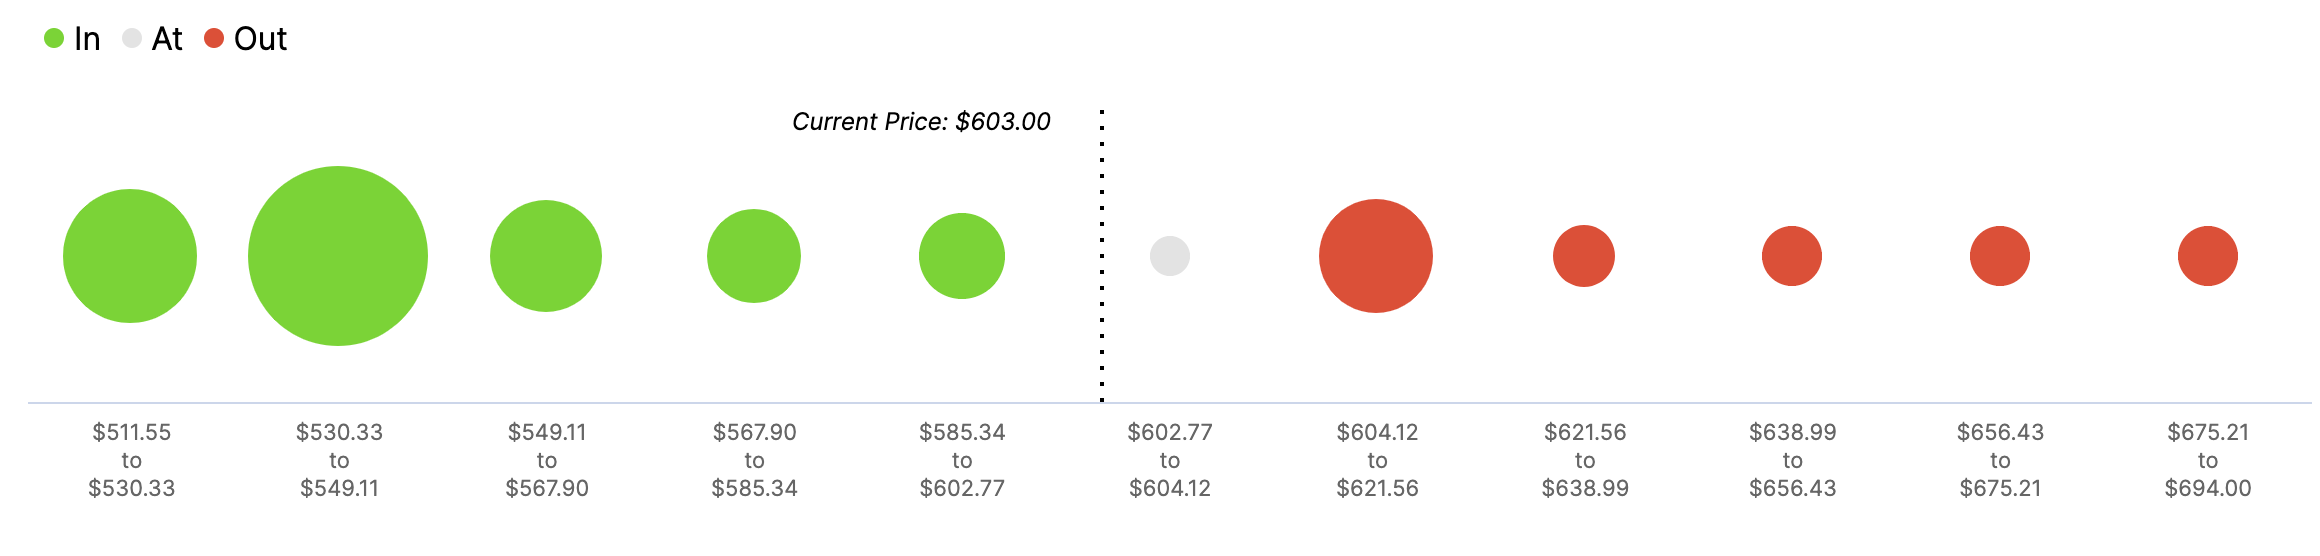 ETH In/Out of the Money Around Price data